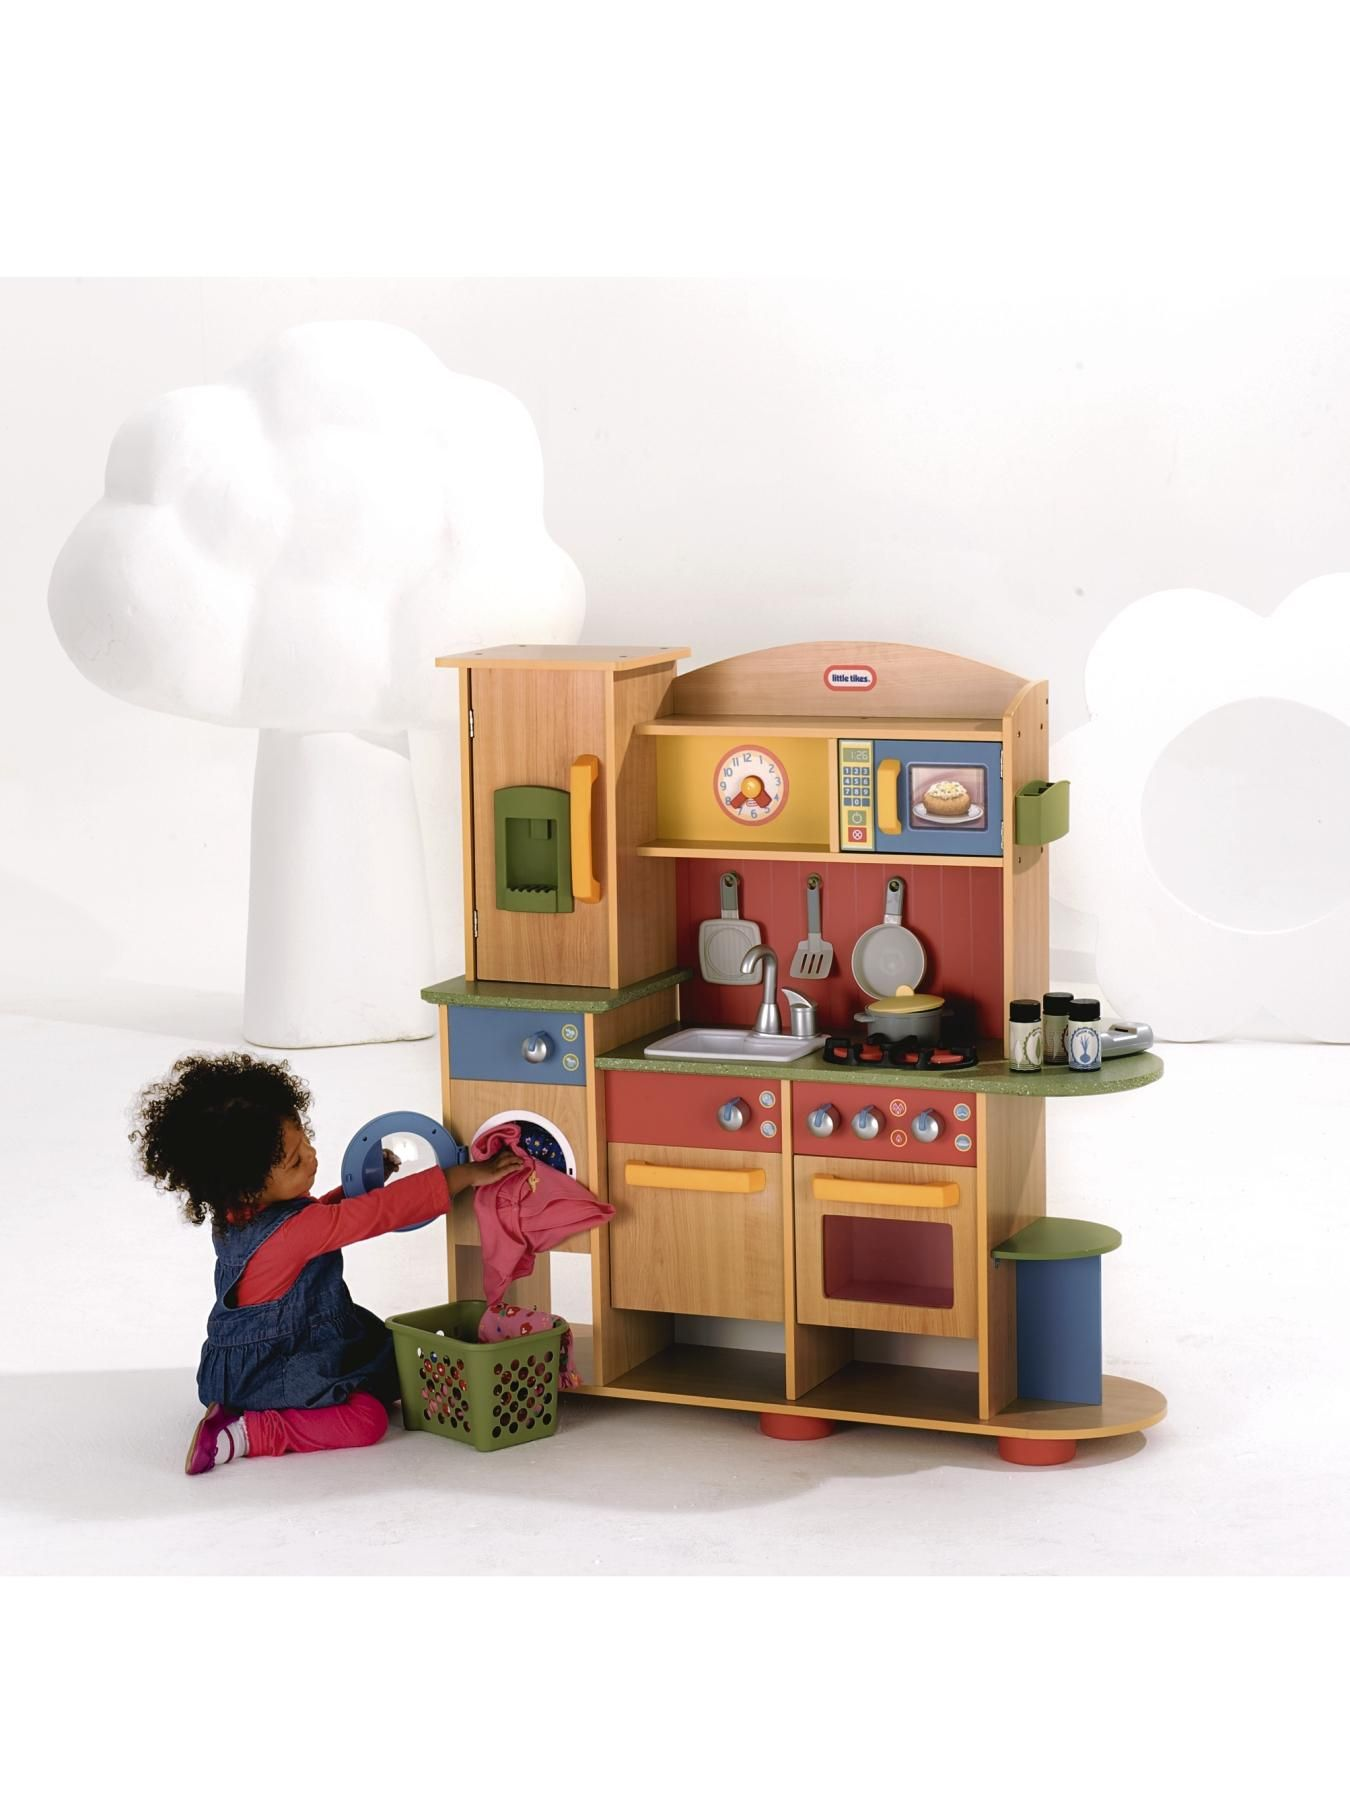 Little Tikes Premium Wood Home and Kitchen | Toy kitchen, Wooden toy ...